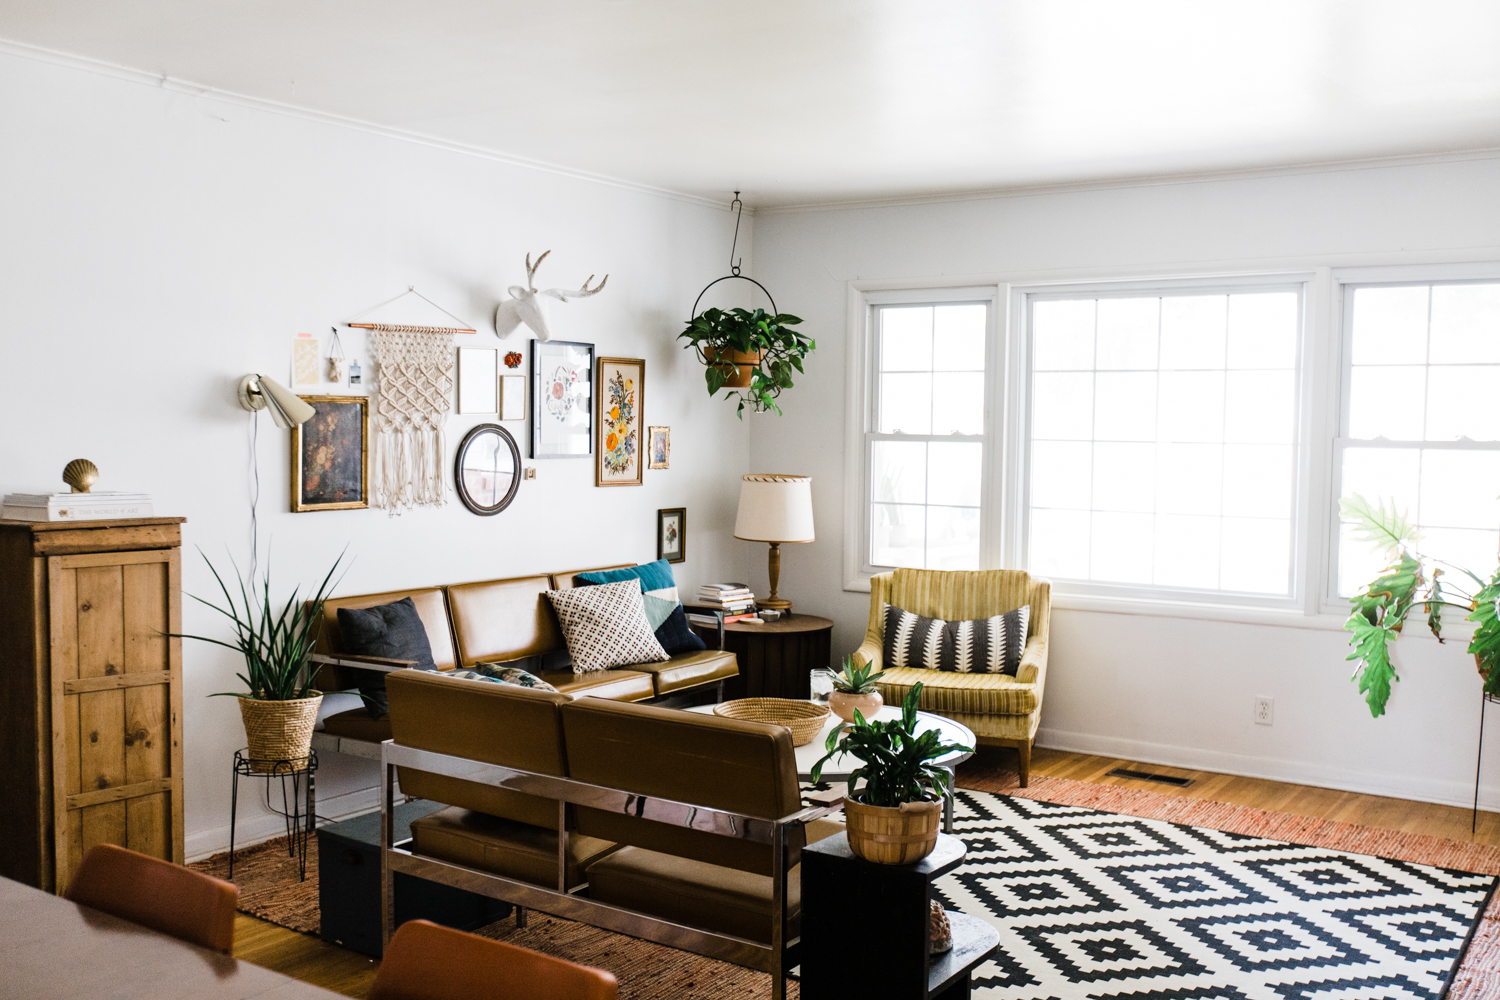 Abbey-Wells-Home-eclectic-colorful-home-WEB-114.jpg